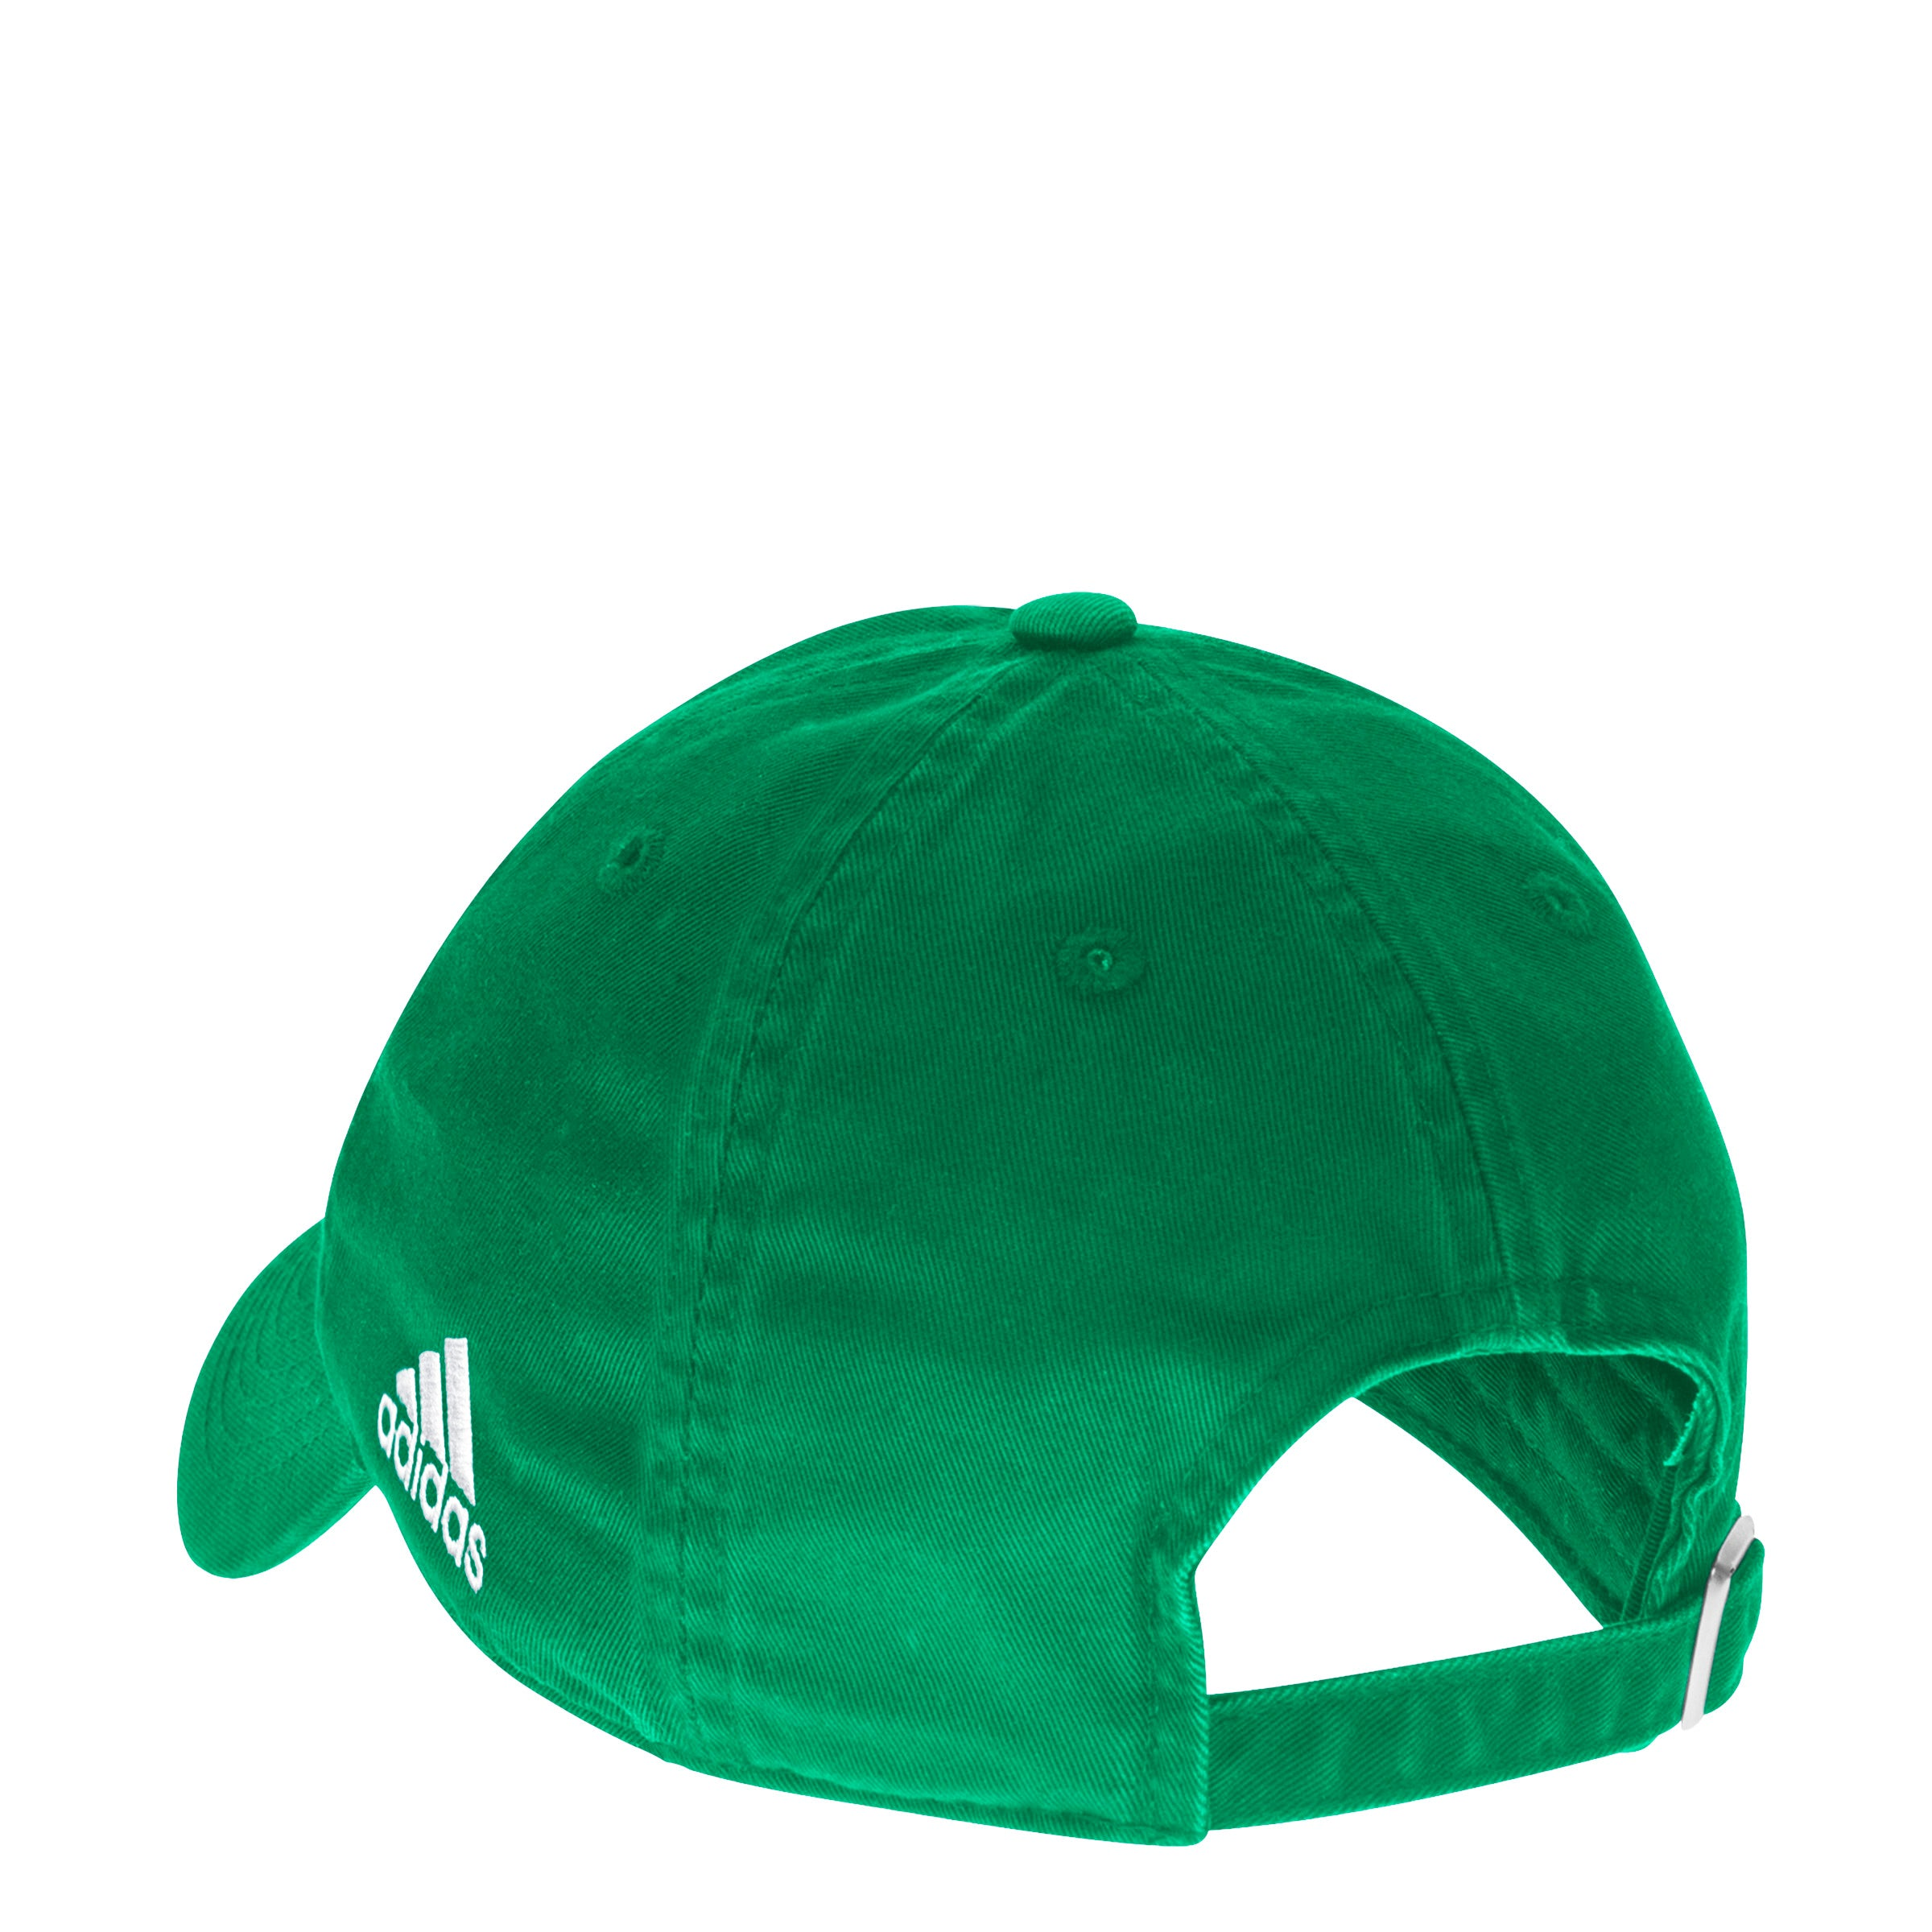 081a5c923be St. Pats Adidas Men s Slouch Adjustable Hat – shop.realsports